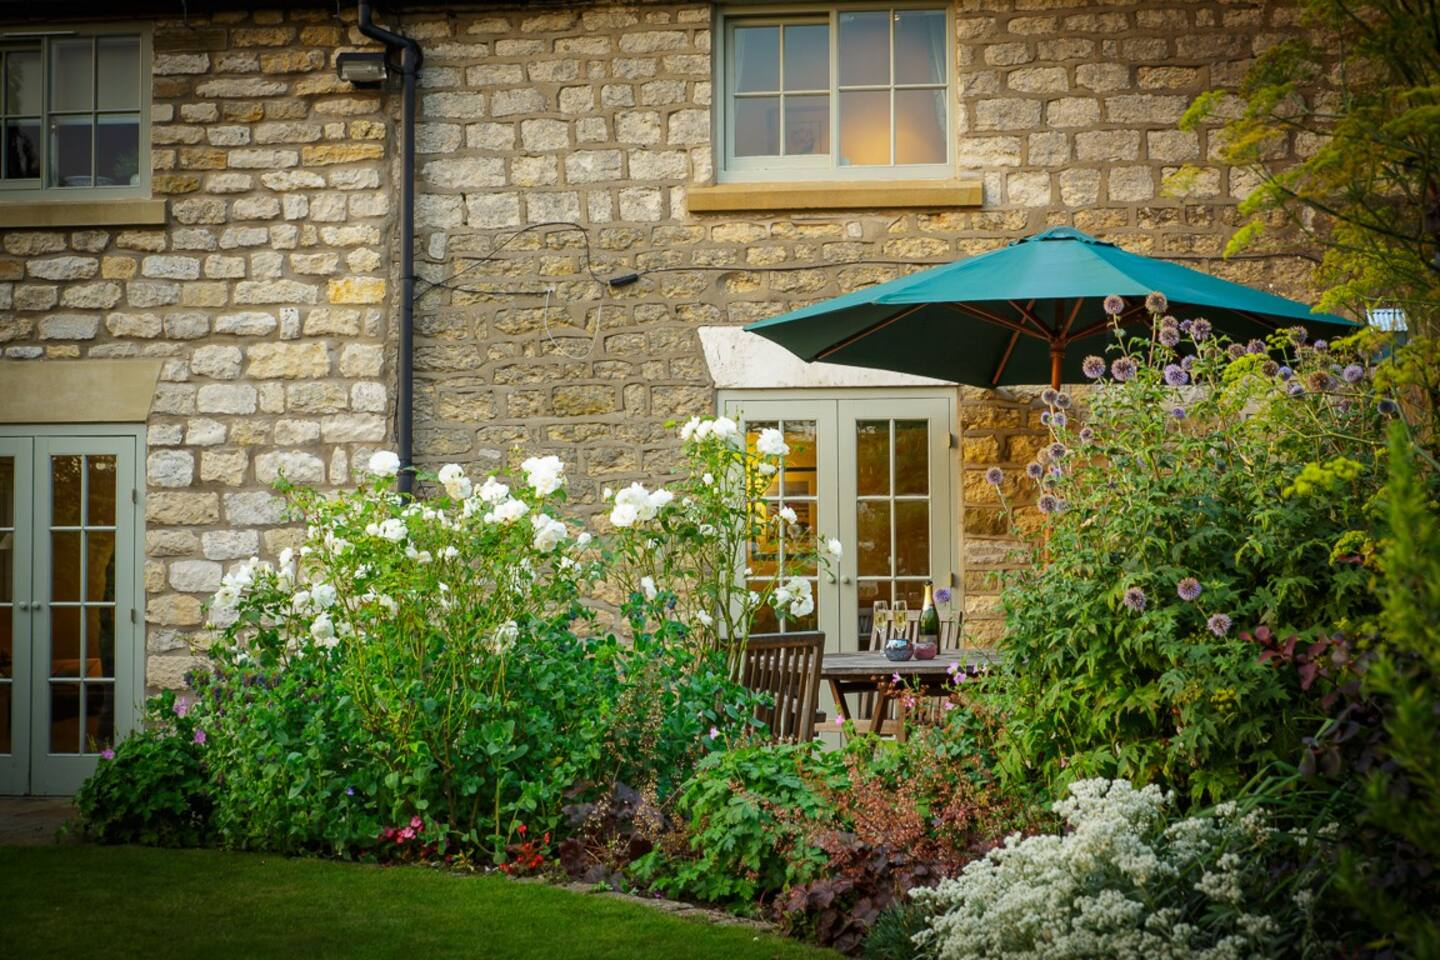 Enjoy a glass or two of fizz on the patio. Overlooking the private, secure, south facing cottage garden